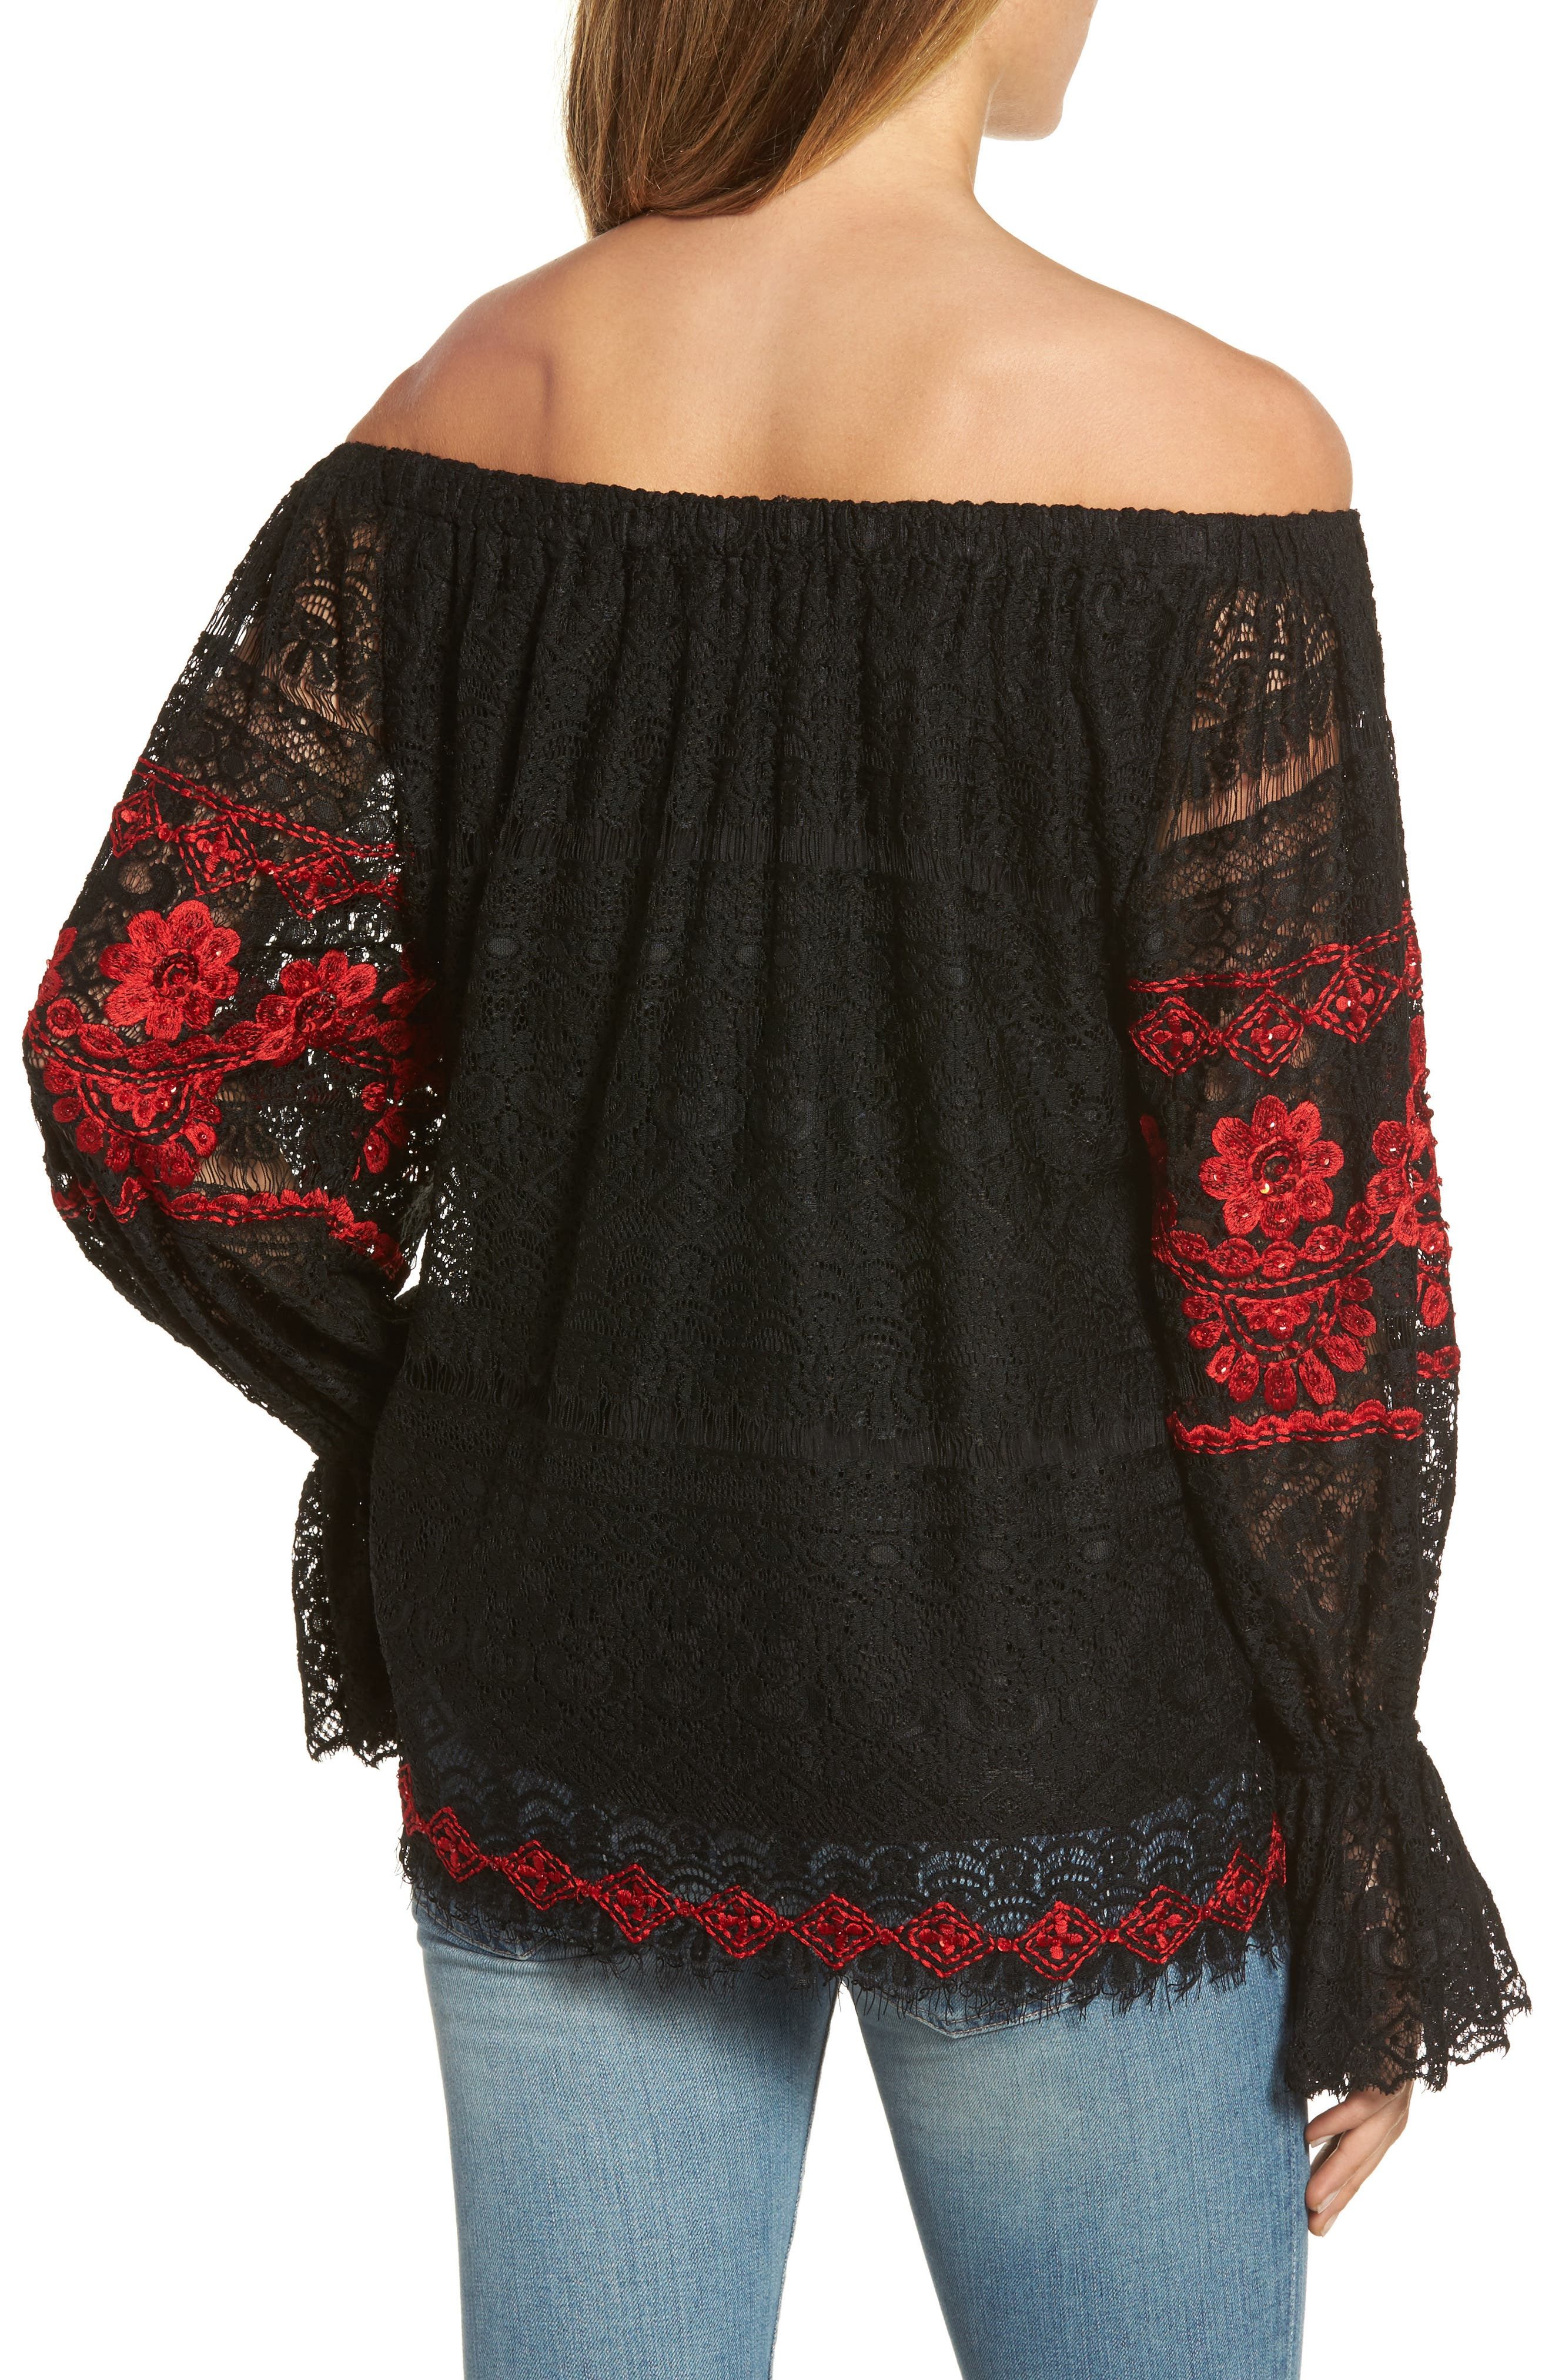 Clare Off the Shoulder Lace Top,                             Alternate thumbnail 2, color,